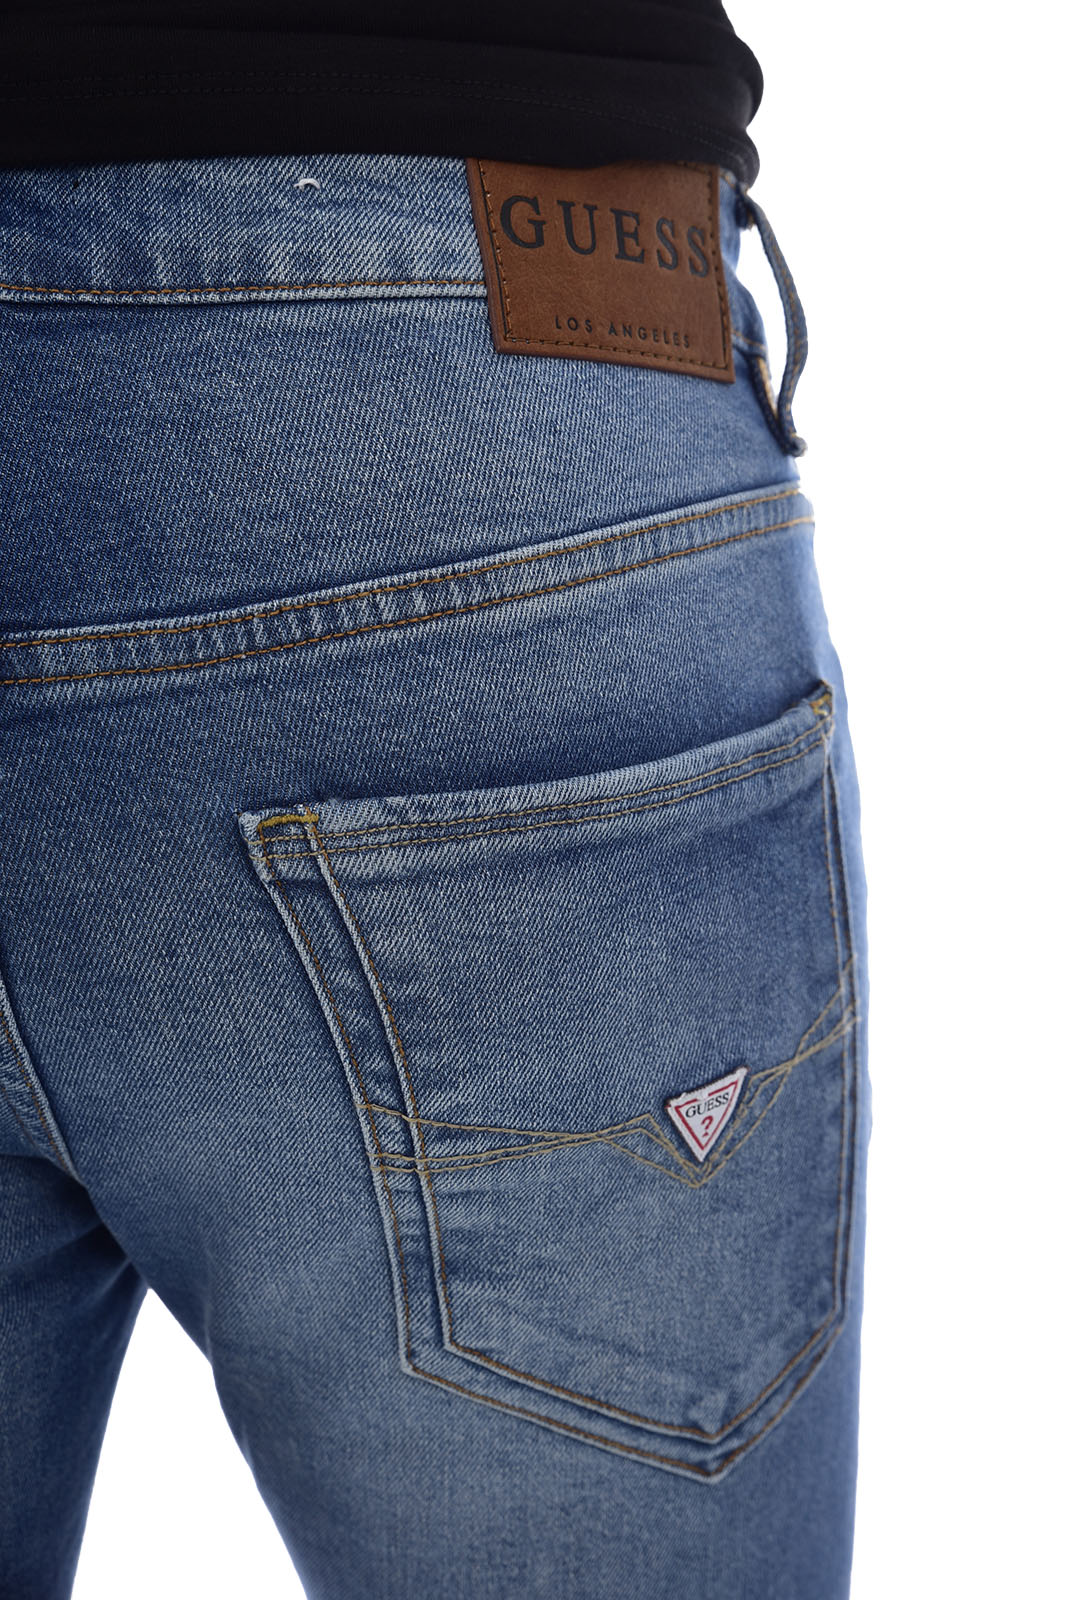 slim / skinny  Guess jeans M84AN1 D33H2 MIAMI BLADES